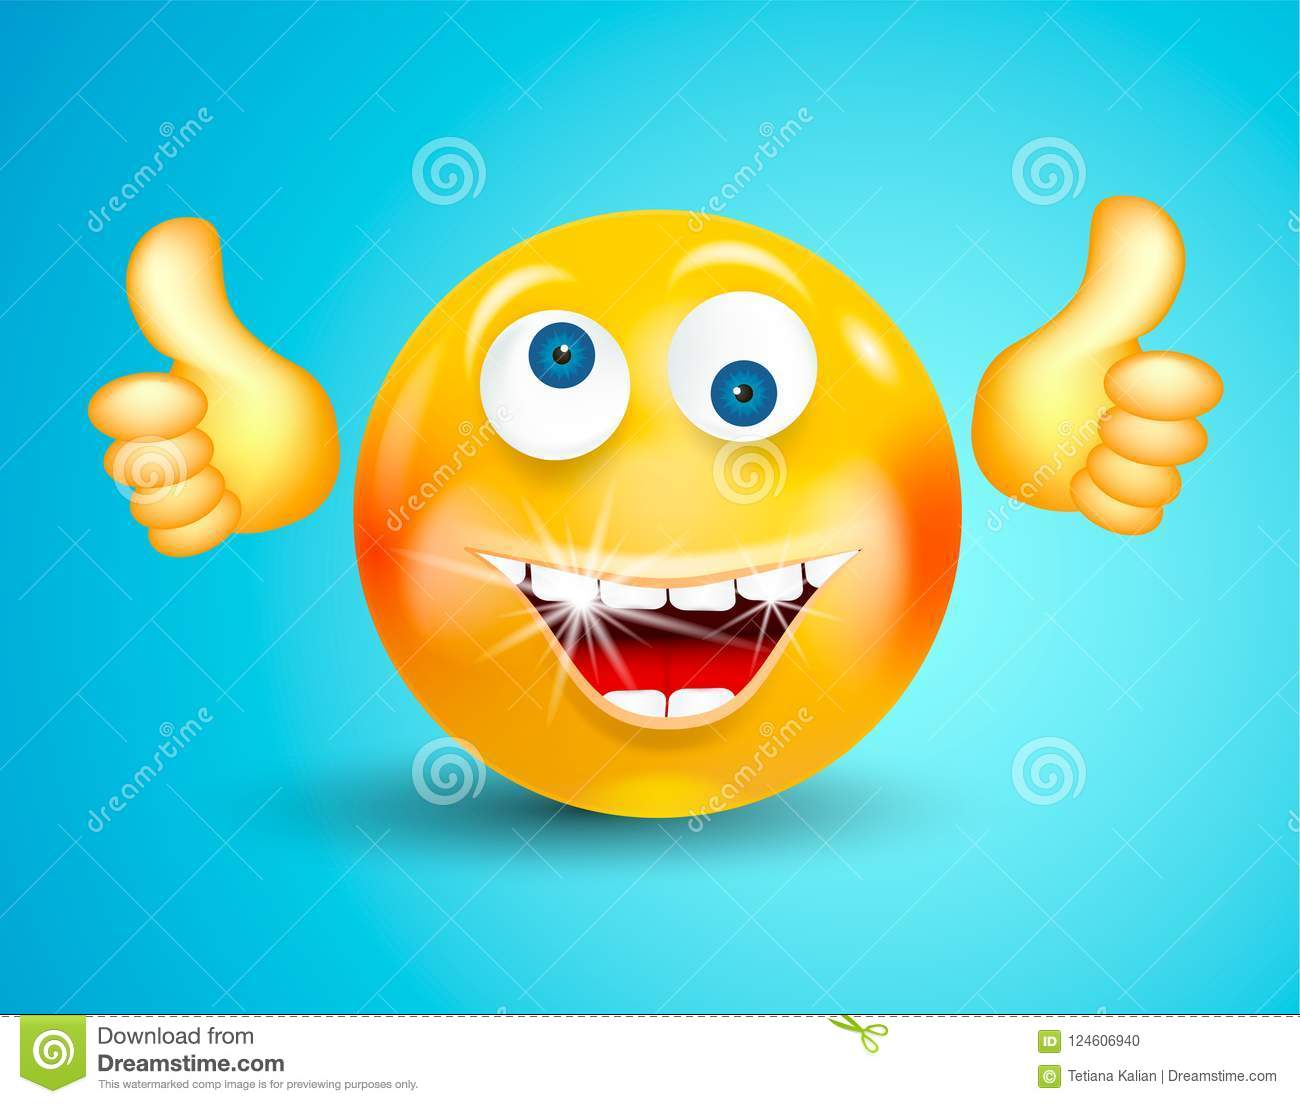 Happy smiling with white shining teeth emoticon or round face showing thumbs up or OK on bright blue background. Cartoon character